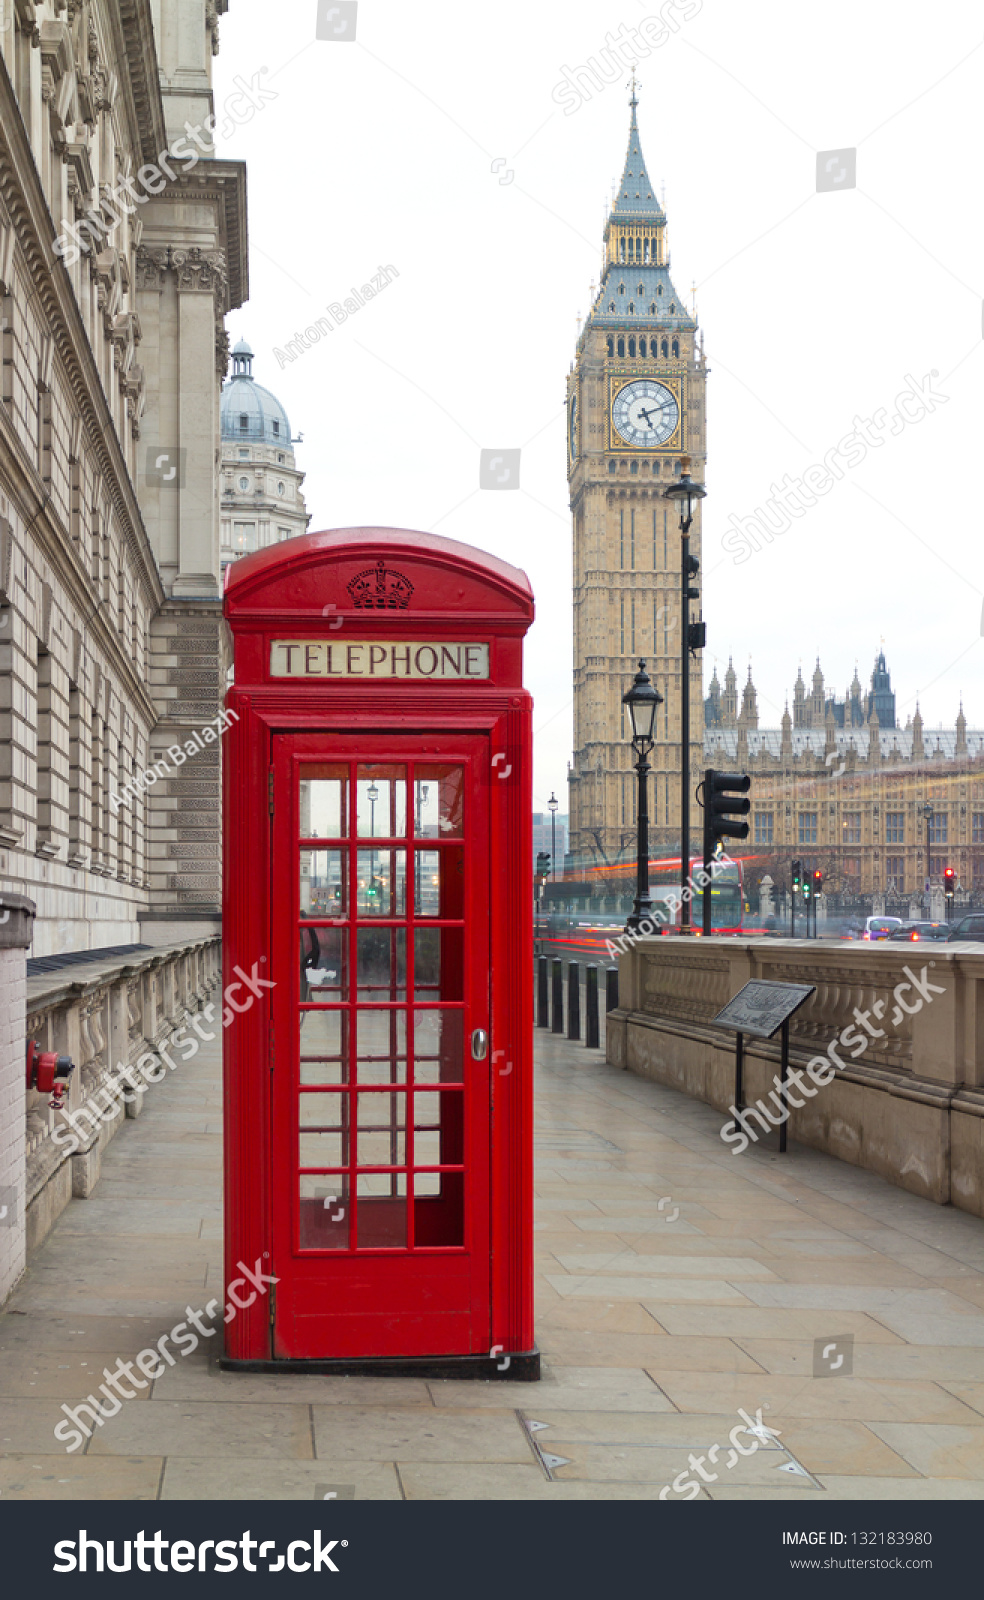 traditional red telephone box in london public phone